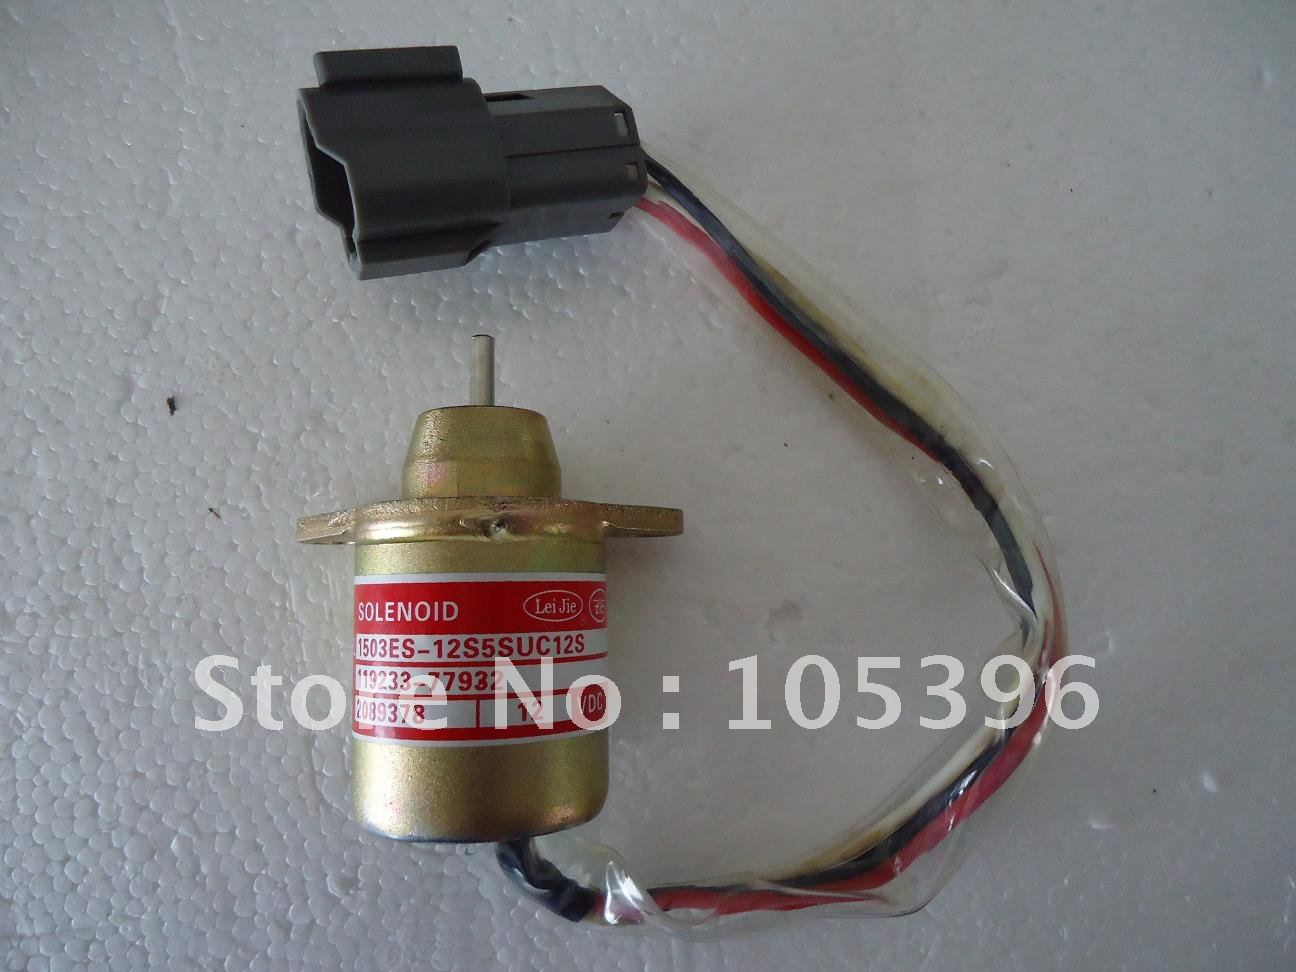 Shut down Solenoid for 119653-77950+fast free shipping by DHL/Fedex/UPS express(5pcs a lot)